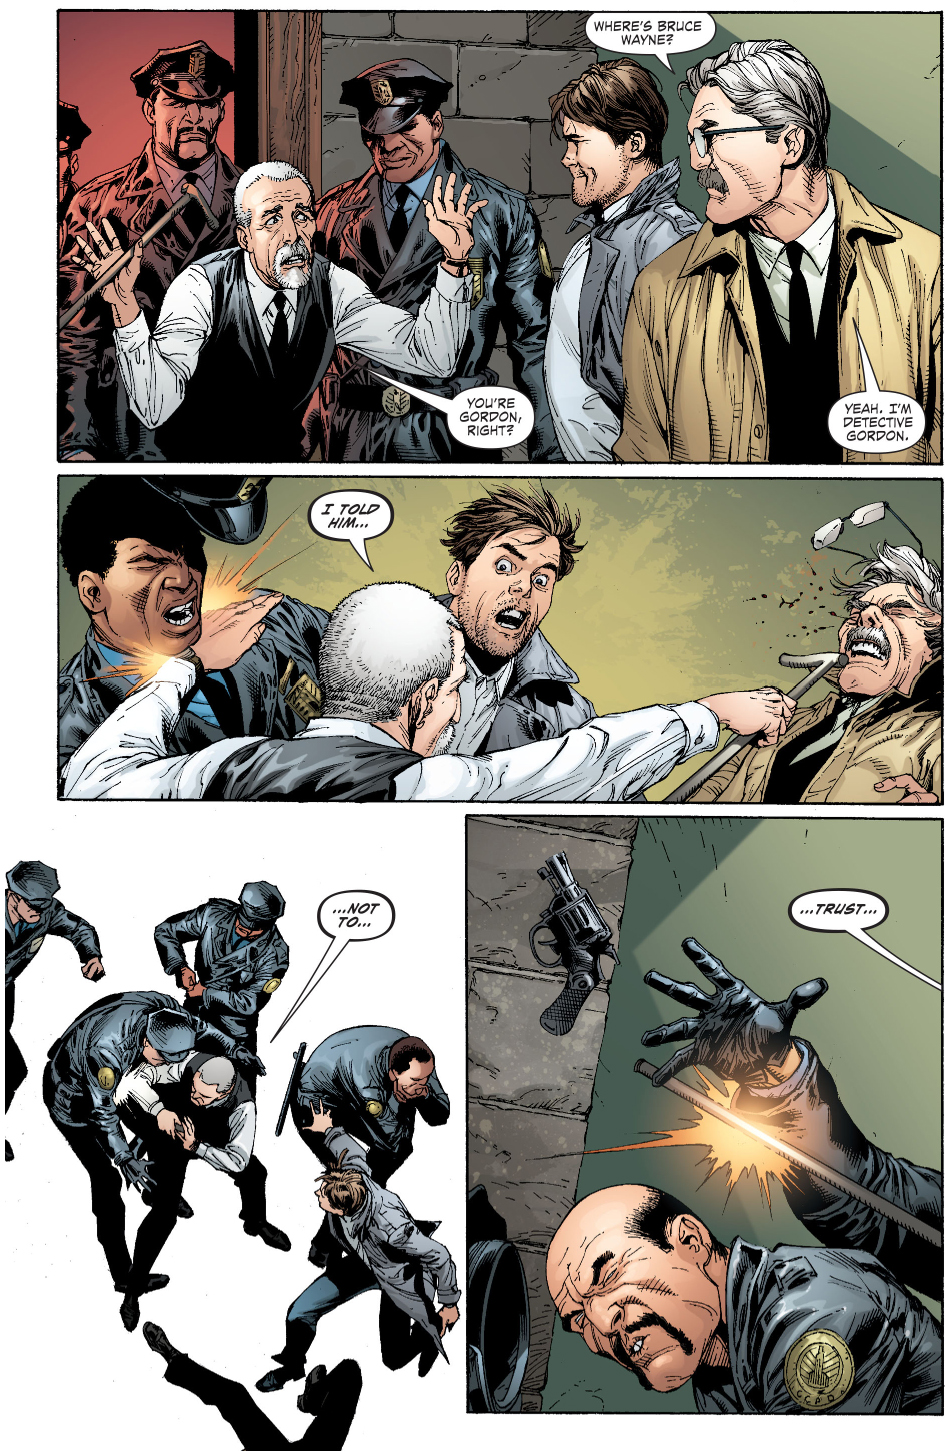 alfred pennyworth vs jim gordon and gotham pd (earth 1)